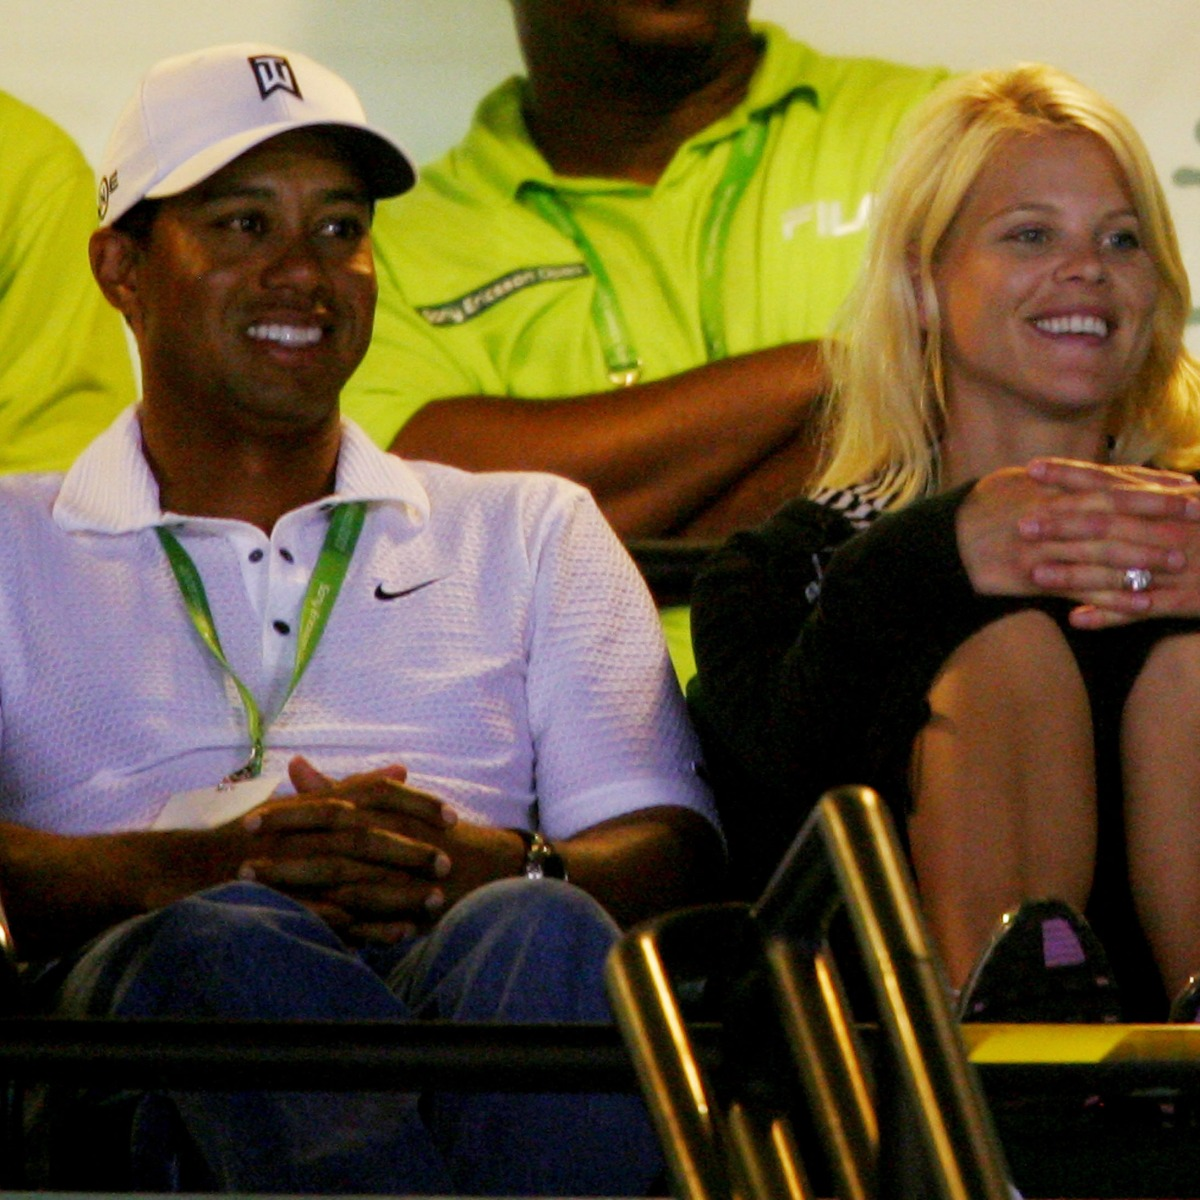 Here's What Tiger Woods and Elin Nordegren Have Said About Their Relationship and How It Ended